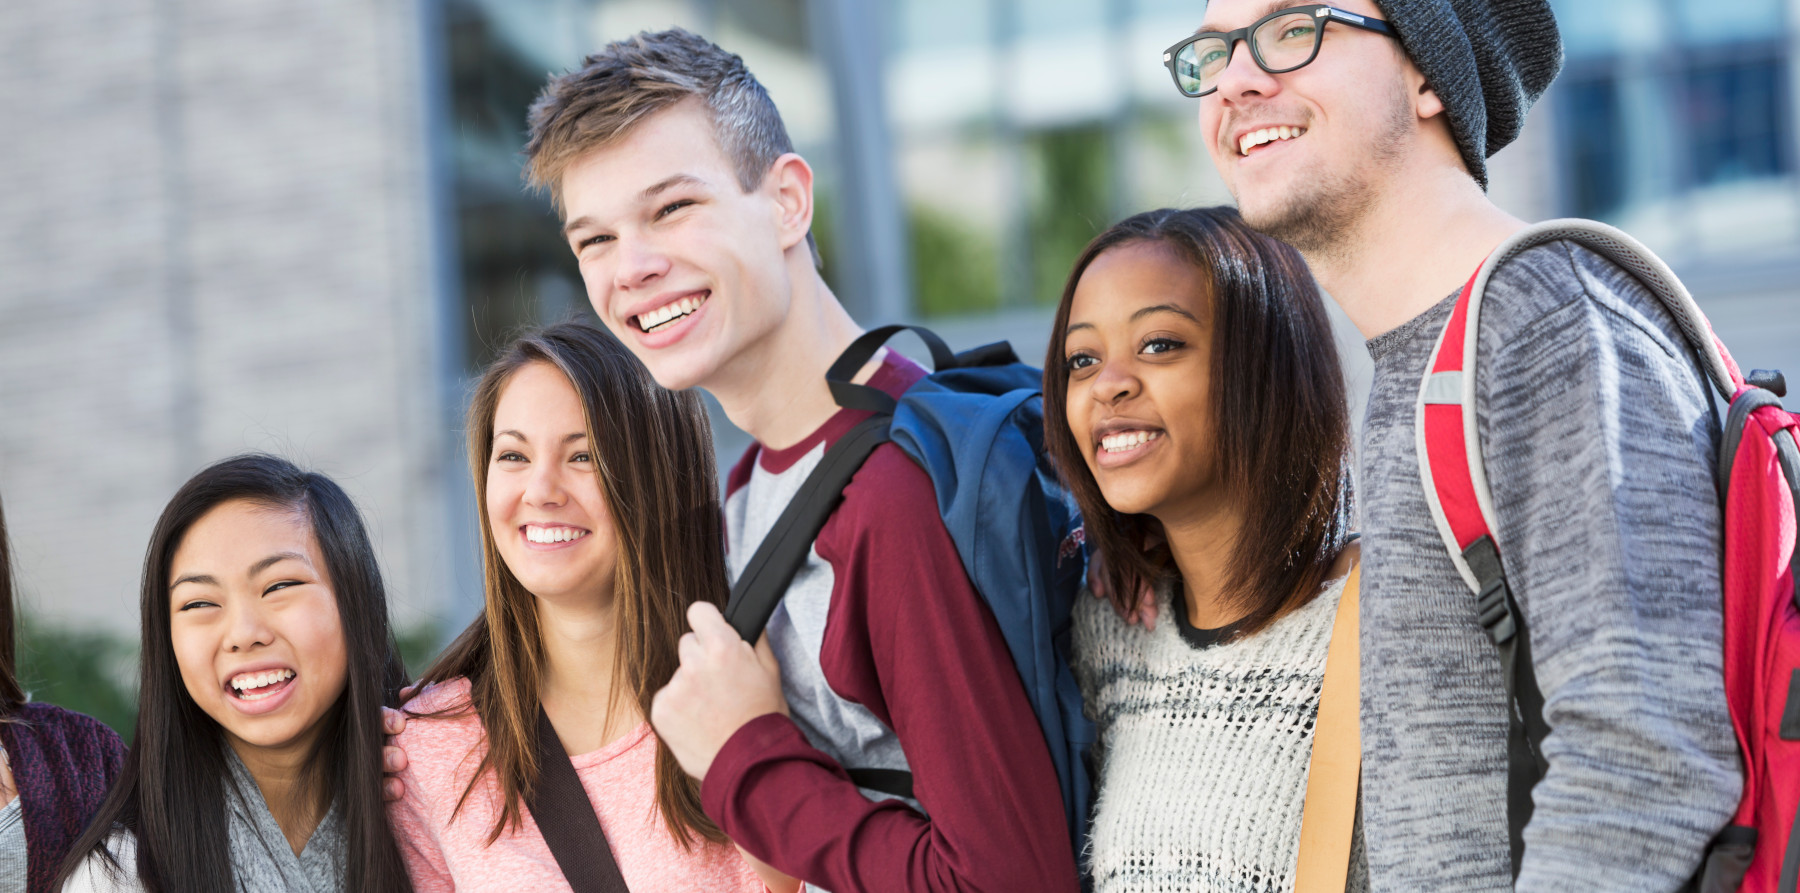 A multi-ethnic group of high school or college students standing in front of a school building. They are lined up in a row, carrying bookbags.